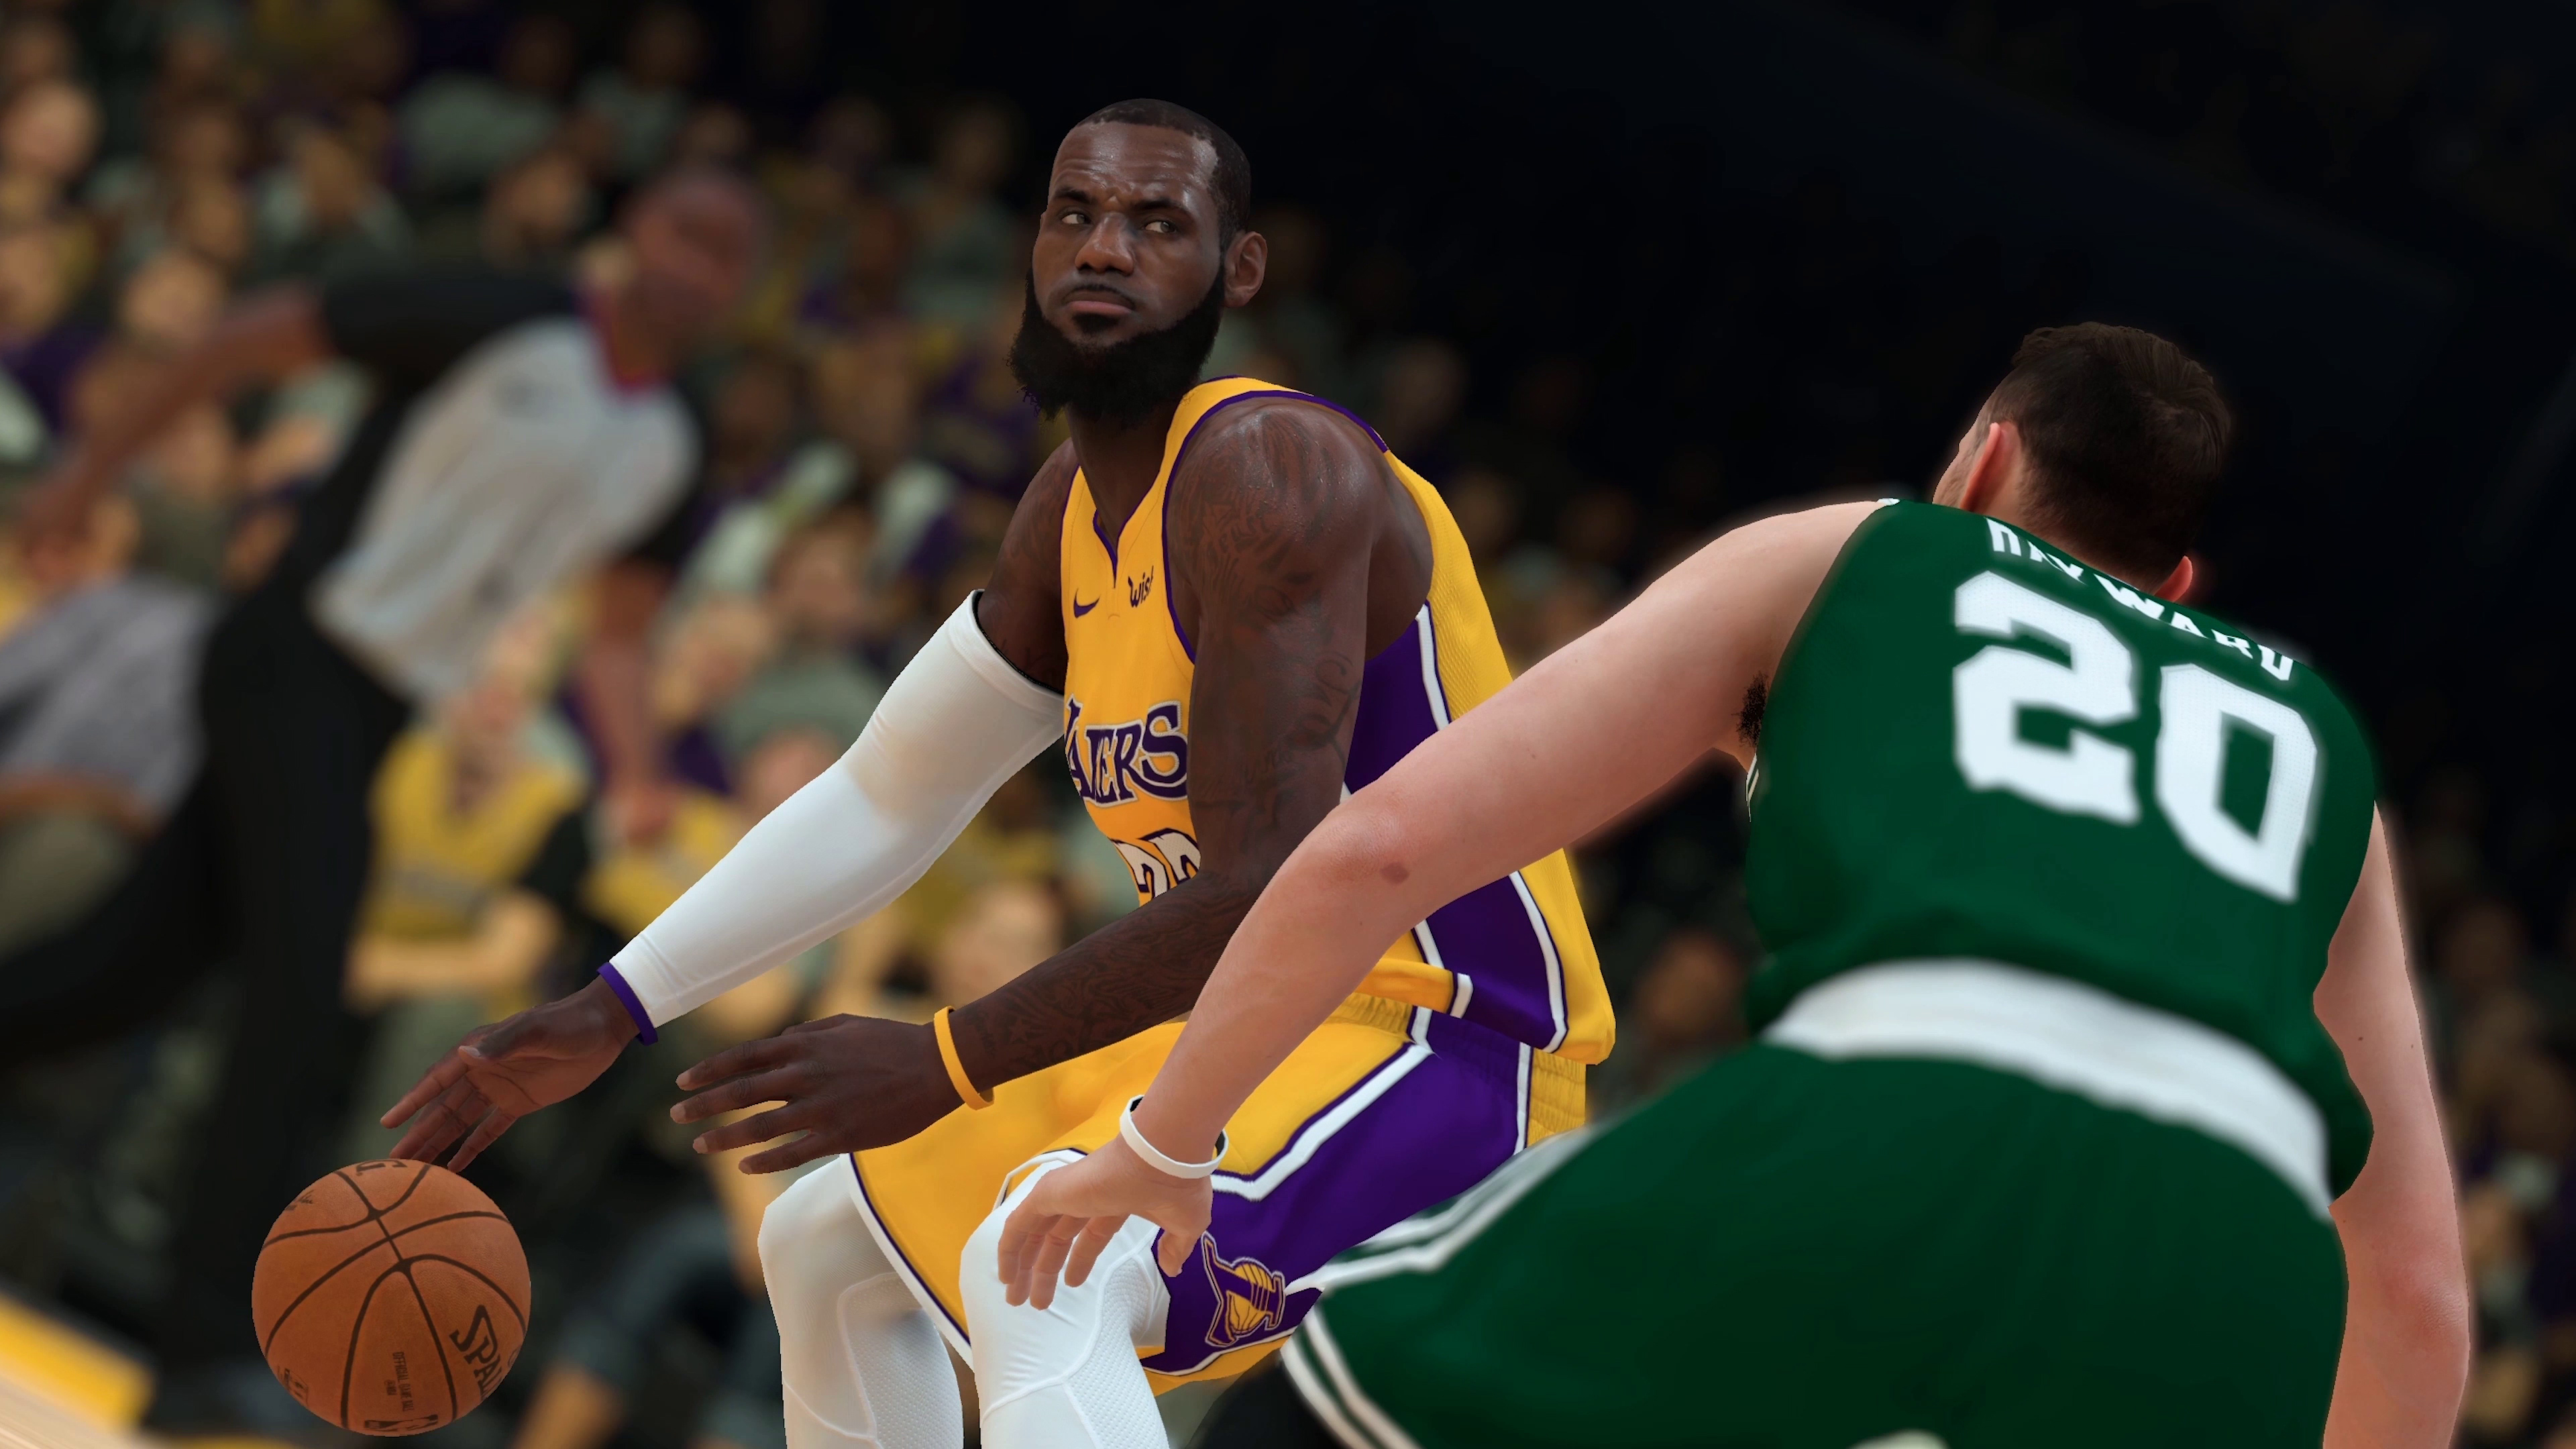 NBA 2K19 recovers from past slips on a thoughtful Way Back